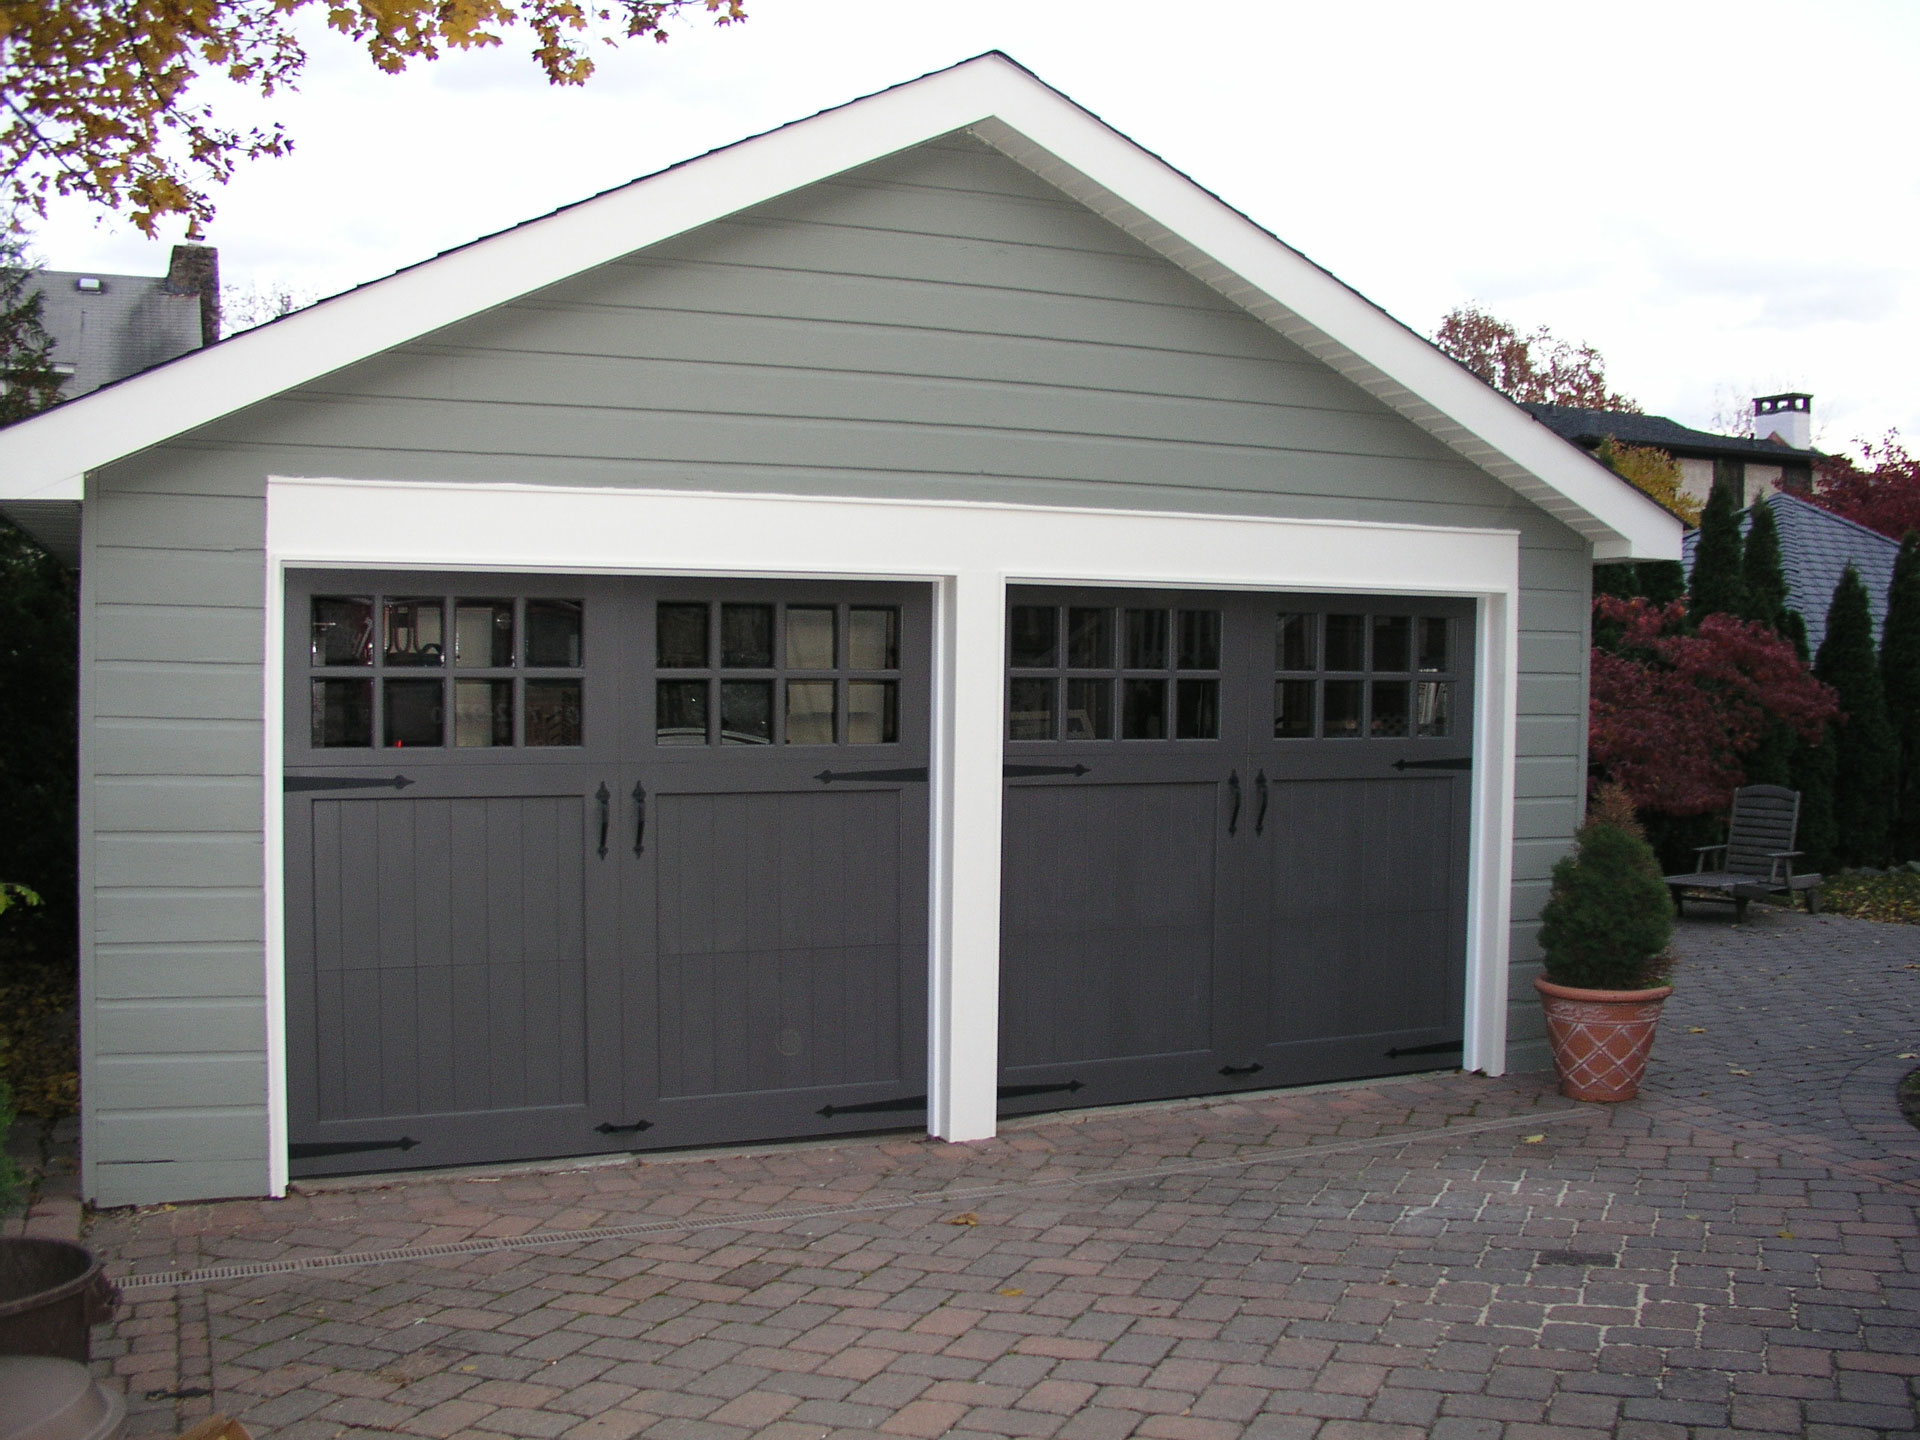 painted garage doors ideas - Colored Garage Doors Examples Ideas &